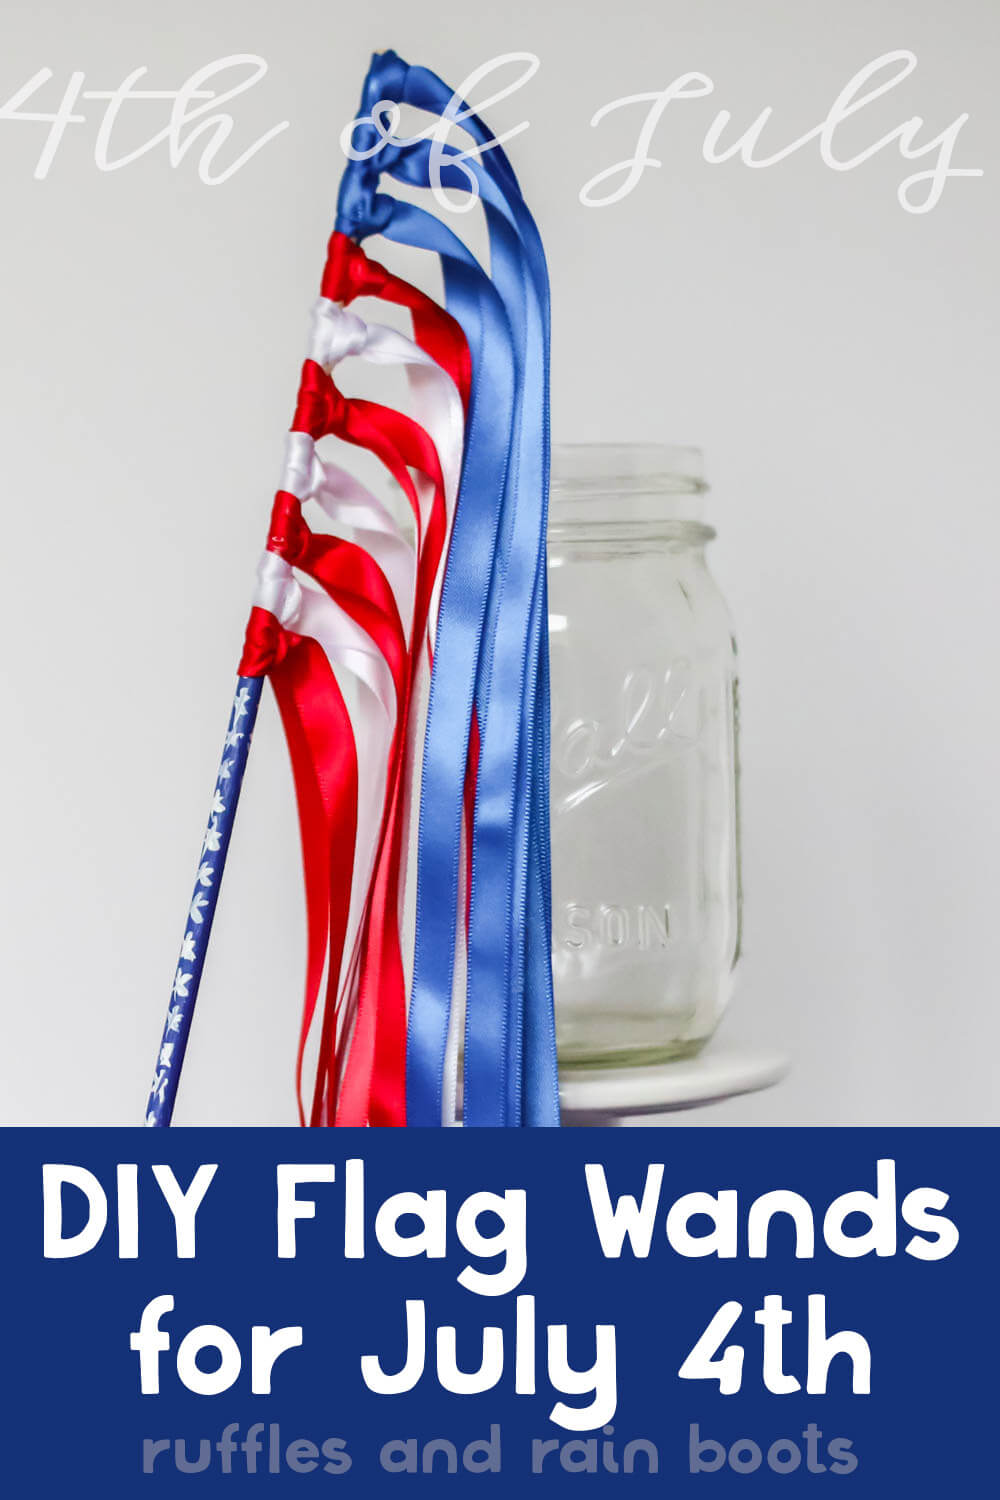 diy flag wands for independence day party leaning on a mason jar on a blue table in front of a white background with text which reads diy flag wands for july 4th